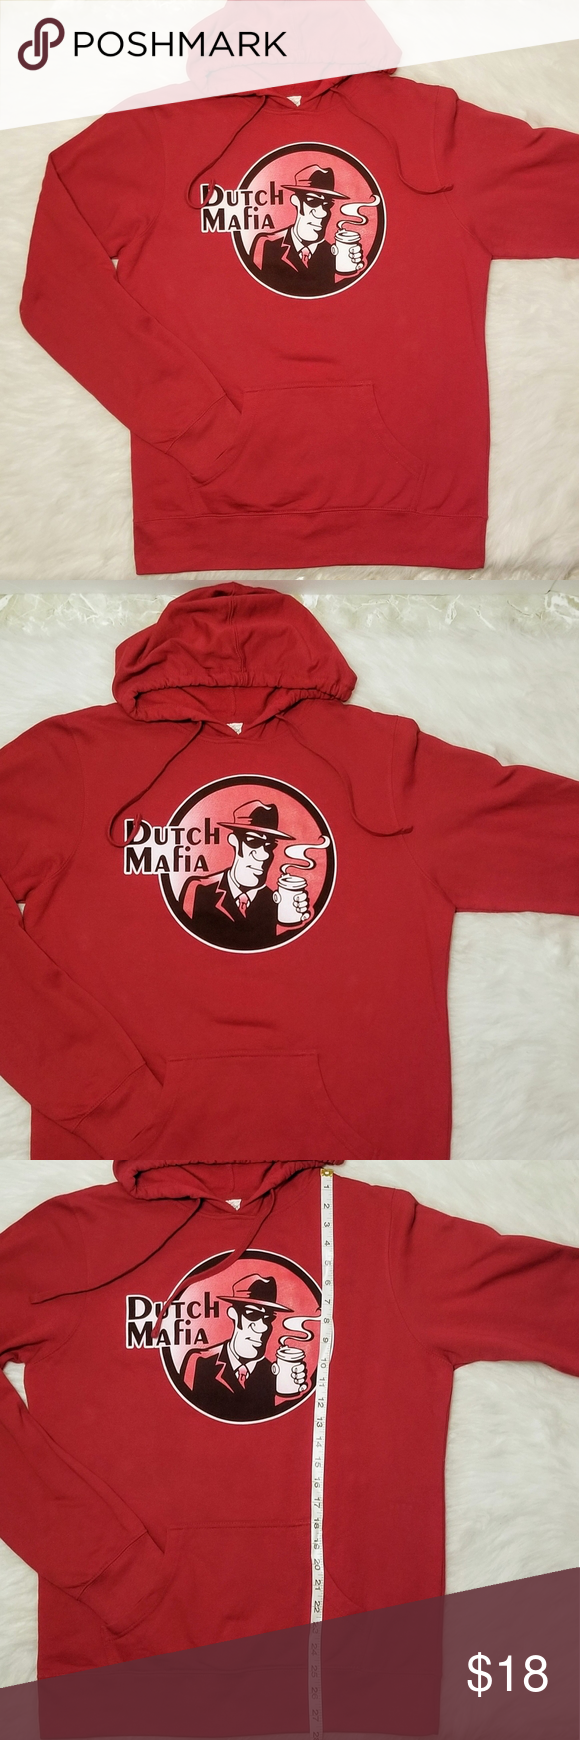 DUTCH BROS MAFIA Brothers Hoodie Dutch Mafia Life Drawstring hood Kangaroo front pocket  Unisex  Cotton/ Polyester Dutch Bros Shirts Sweatshirts & Hoodies #dutchbros